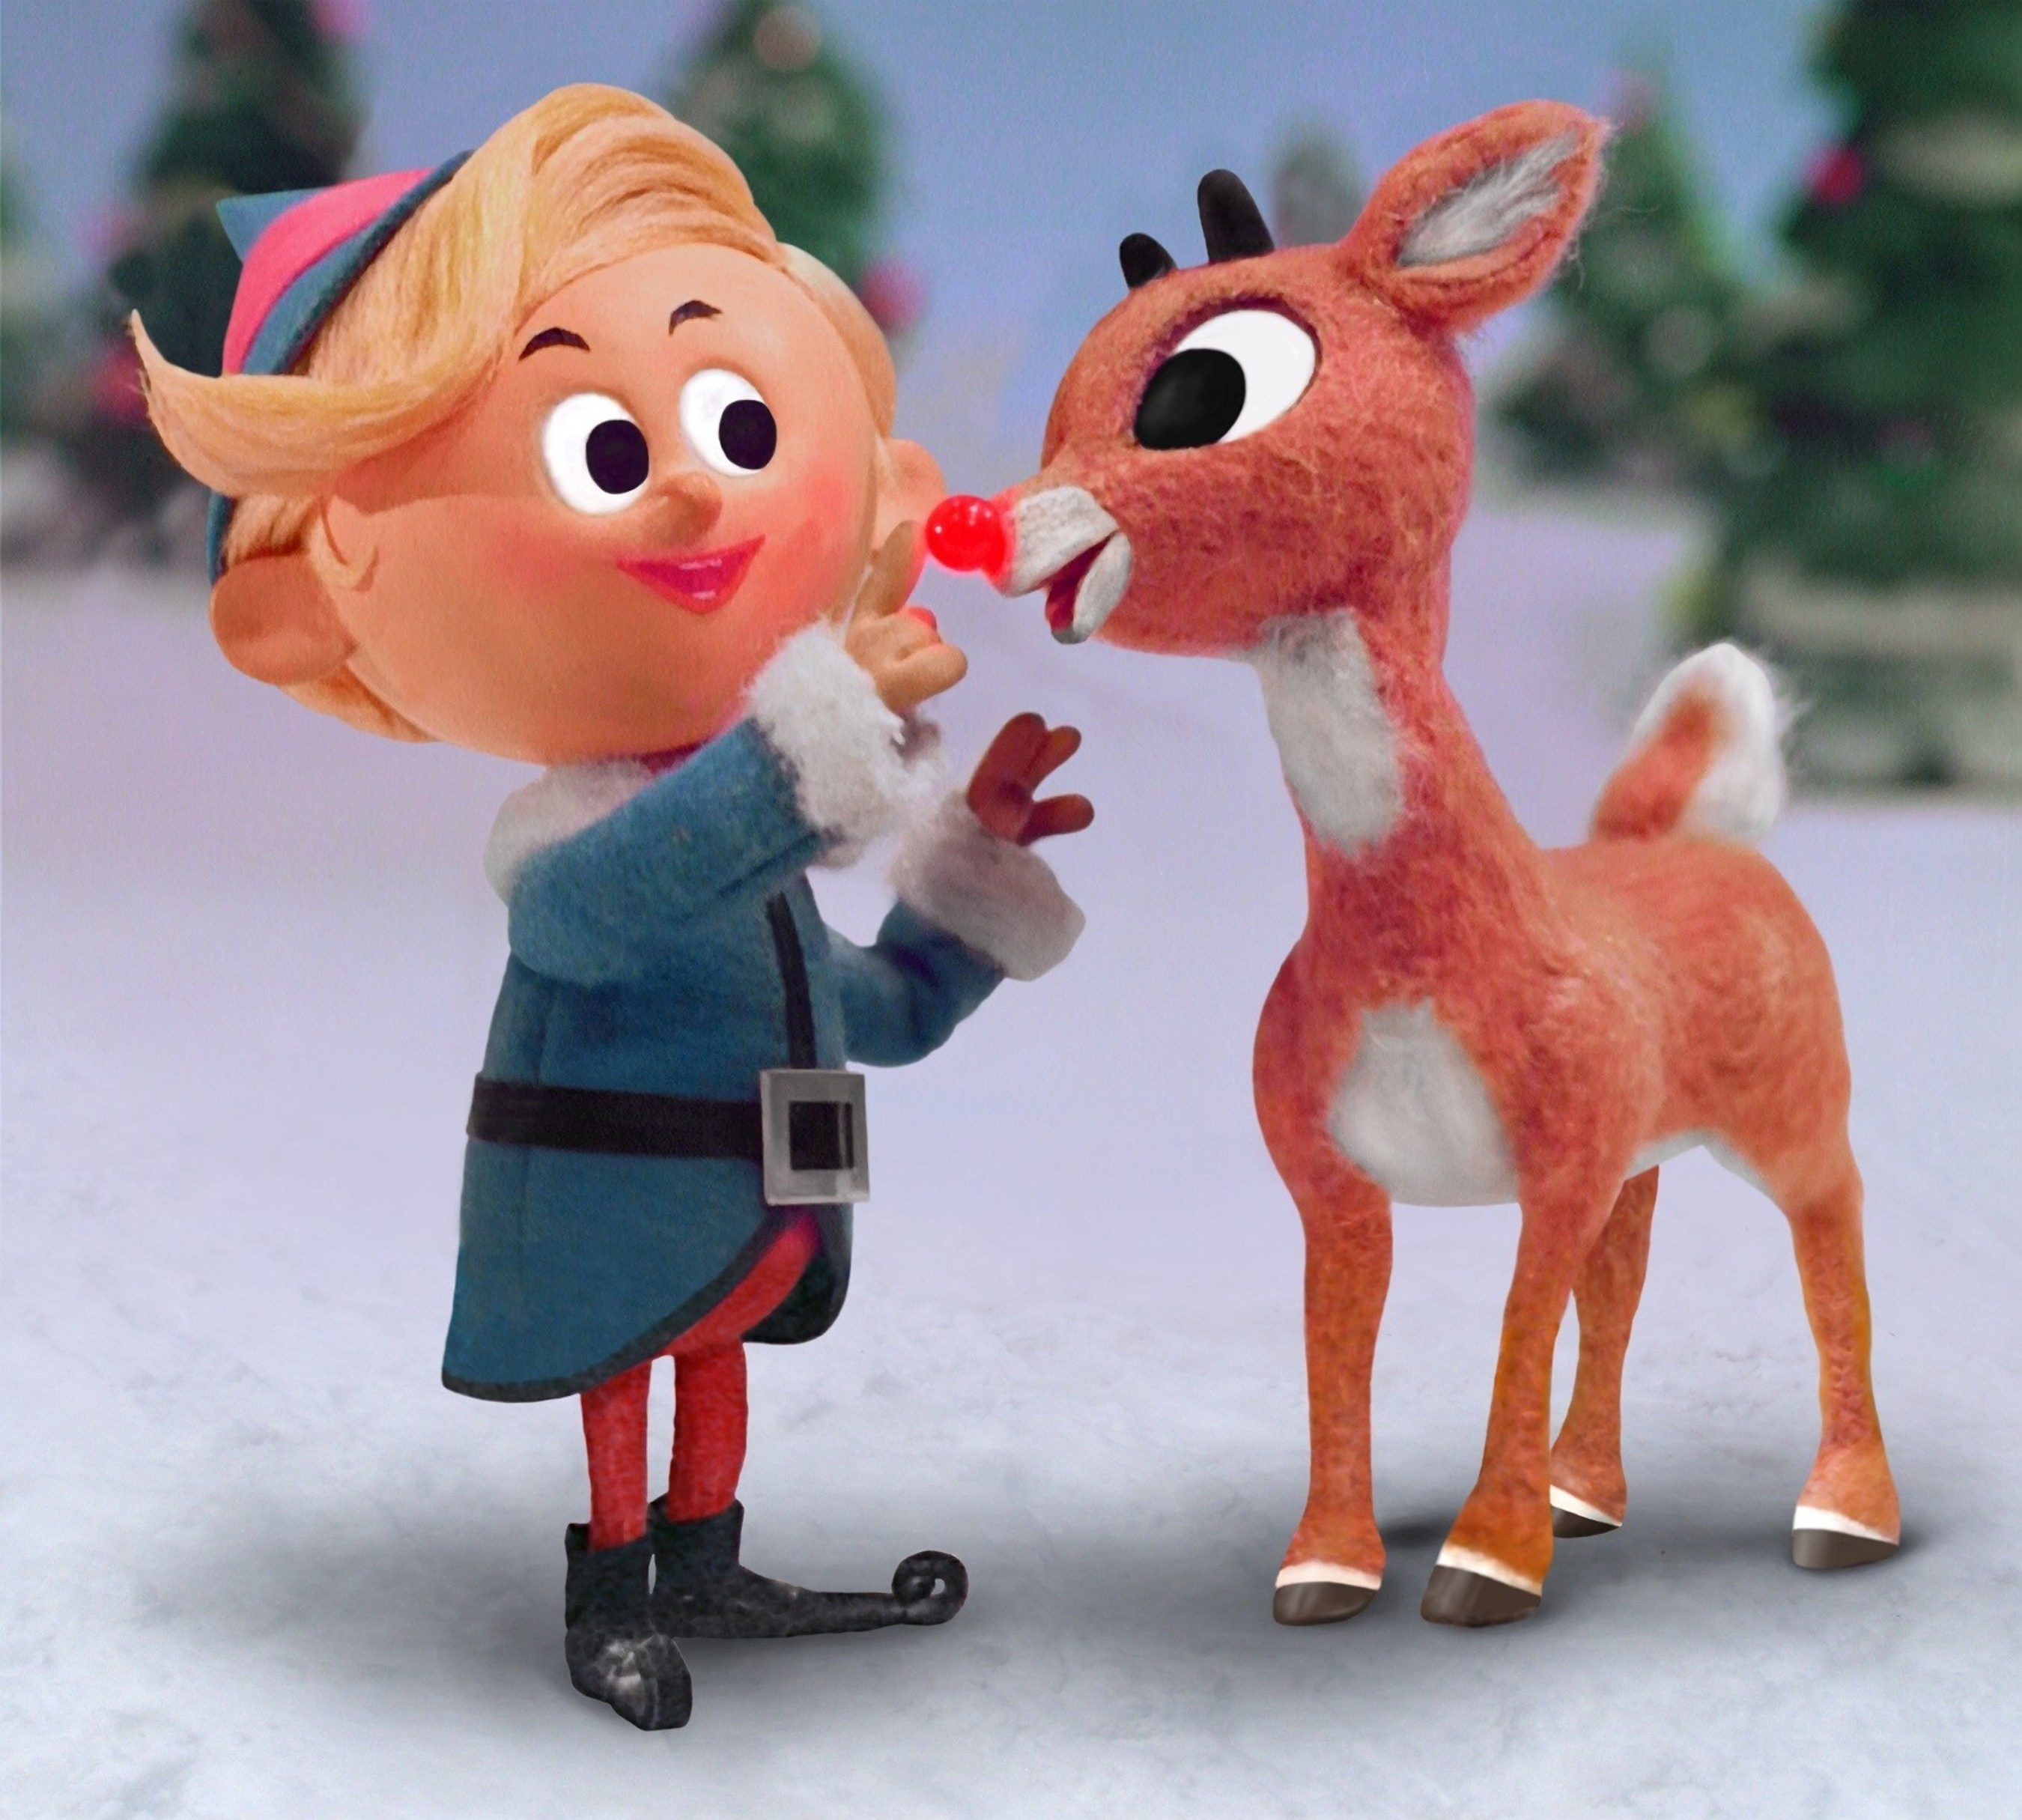 """Hermey and Rudolph first appeared on TV screens in the U.S. 50 years ago -- and on Nov. 4, a special DVD and Blu-ray collector's edition honor the 50th anniversary of the unforgettable TV special. Rudolph the Red-Nosed Reindeer(c) and (r) The Rudolph Co., L.P.  """"Rudolph the Red-Nosed Reindeer"""" animated program(c) Classic Media, LLC. All rights reserved. (PRNewsFoto/DreamWorks Animation)"""